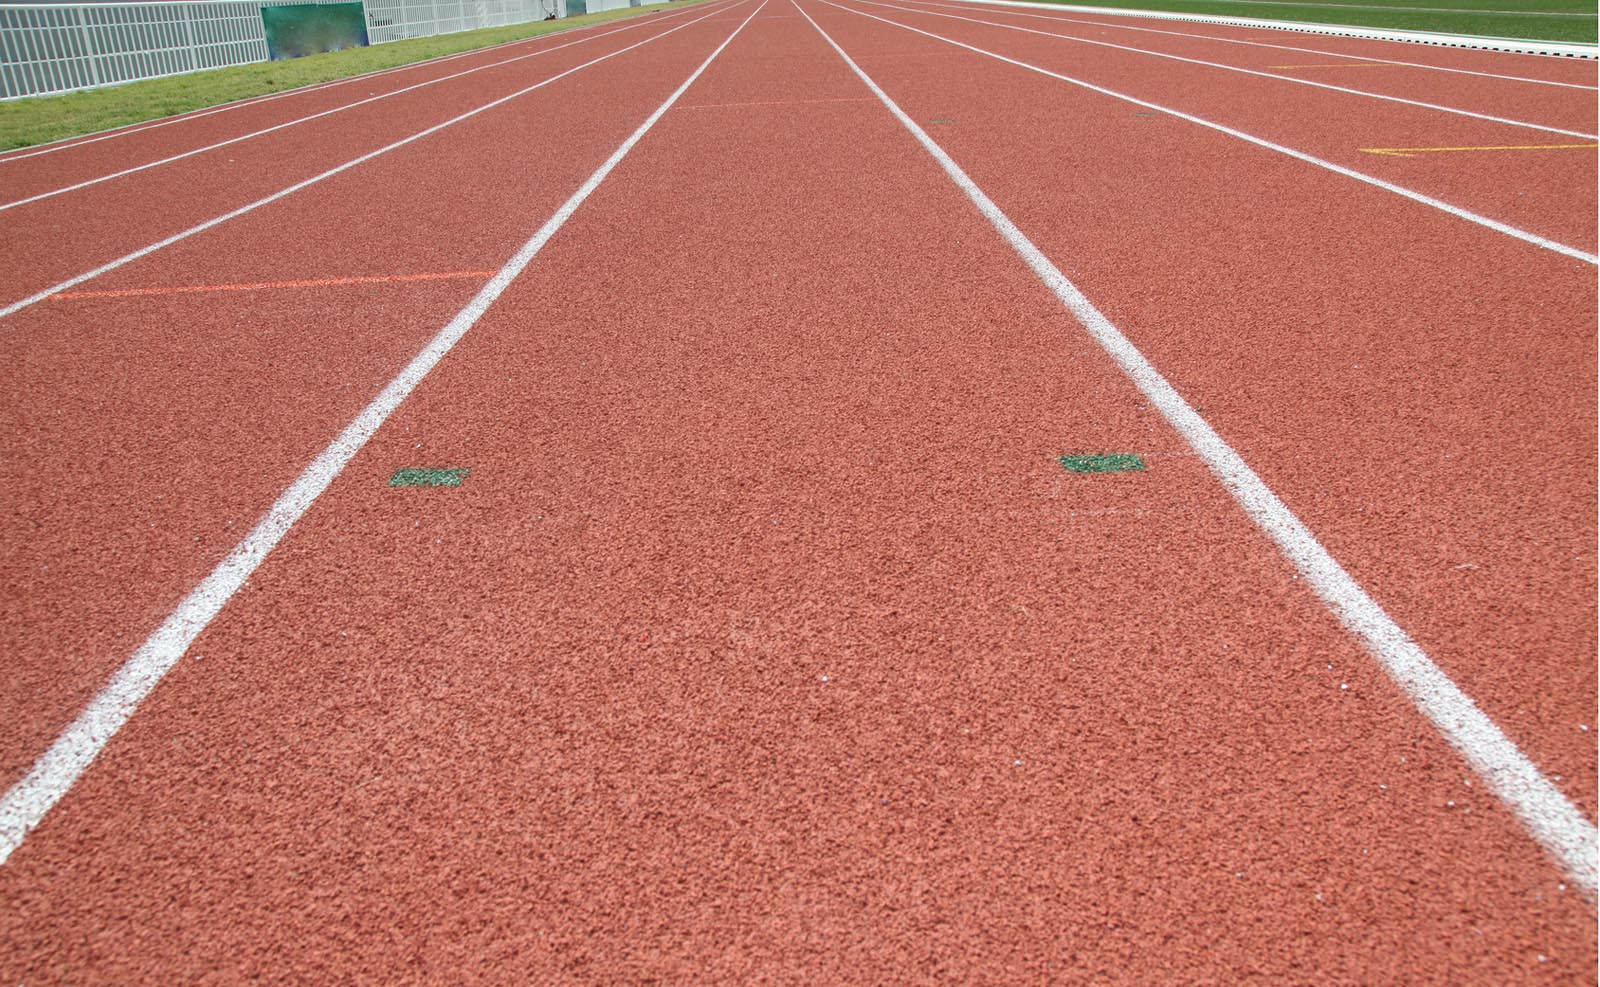 Athletics Performance Coaching